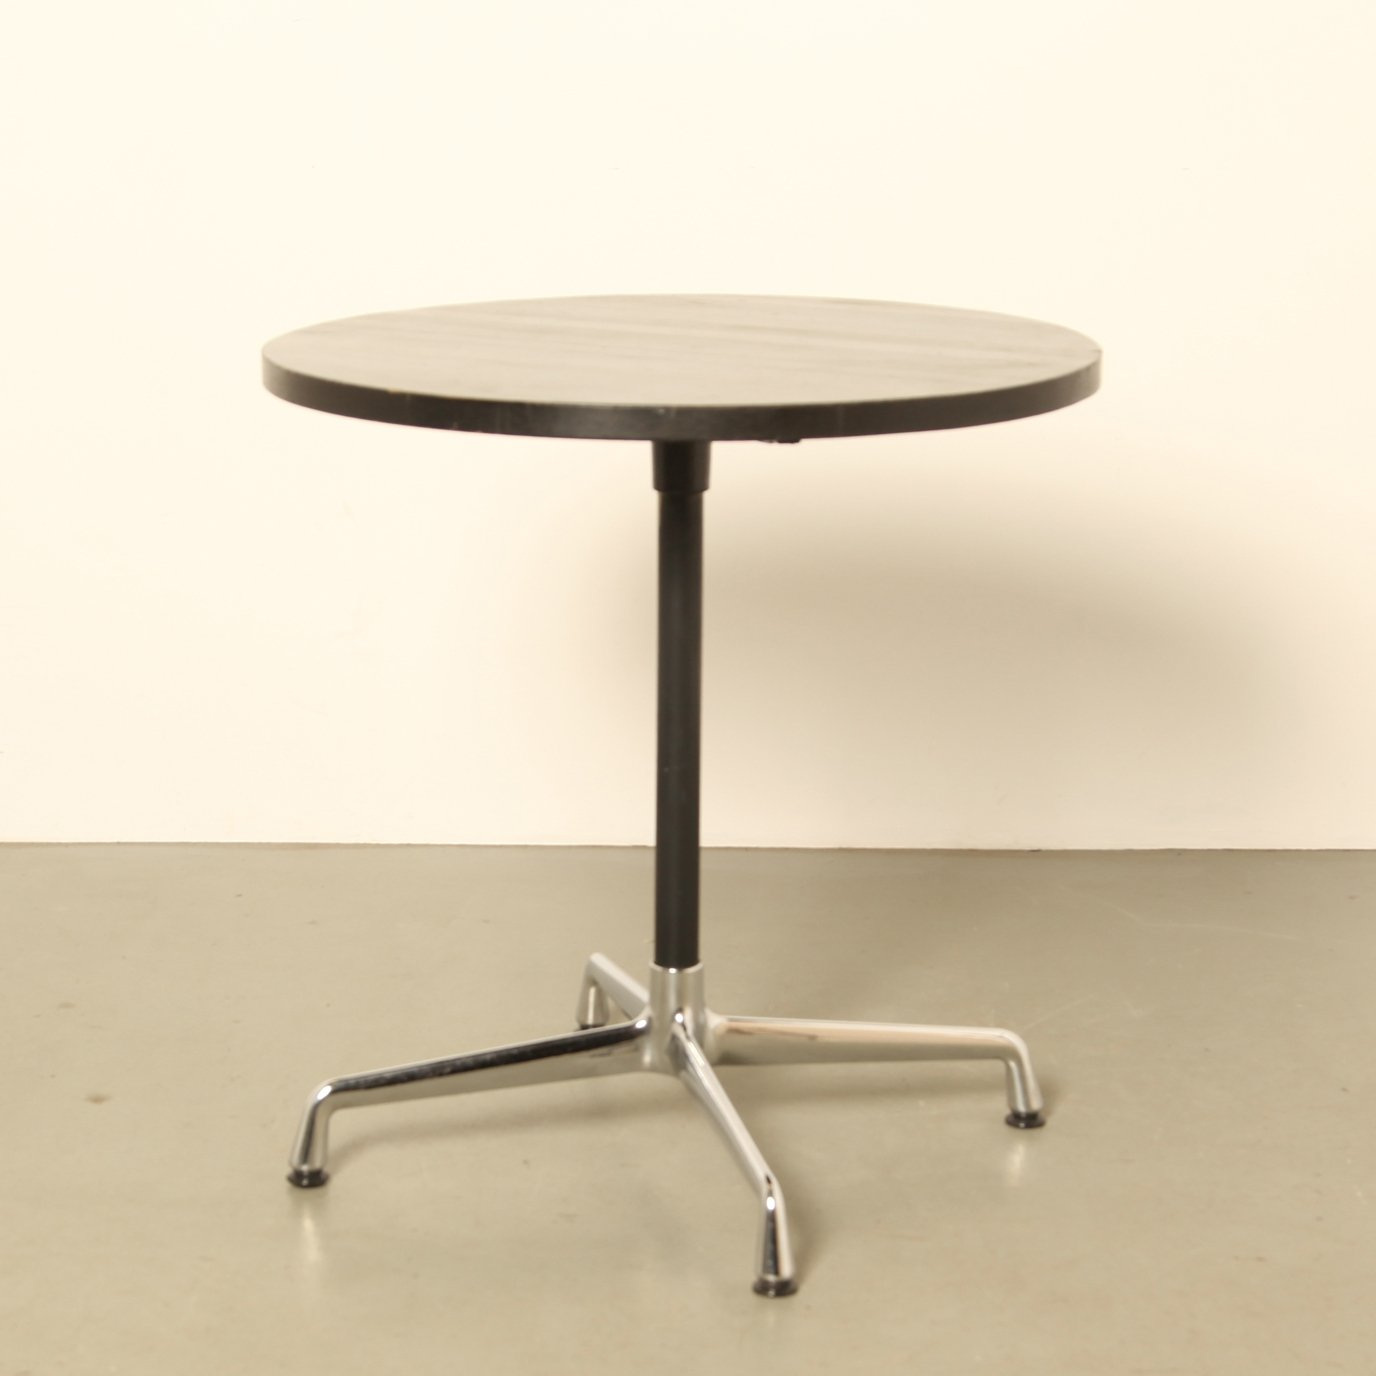 Cafe Or Segment Table By Charles Eames For Vitra 74598